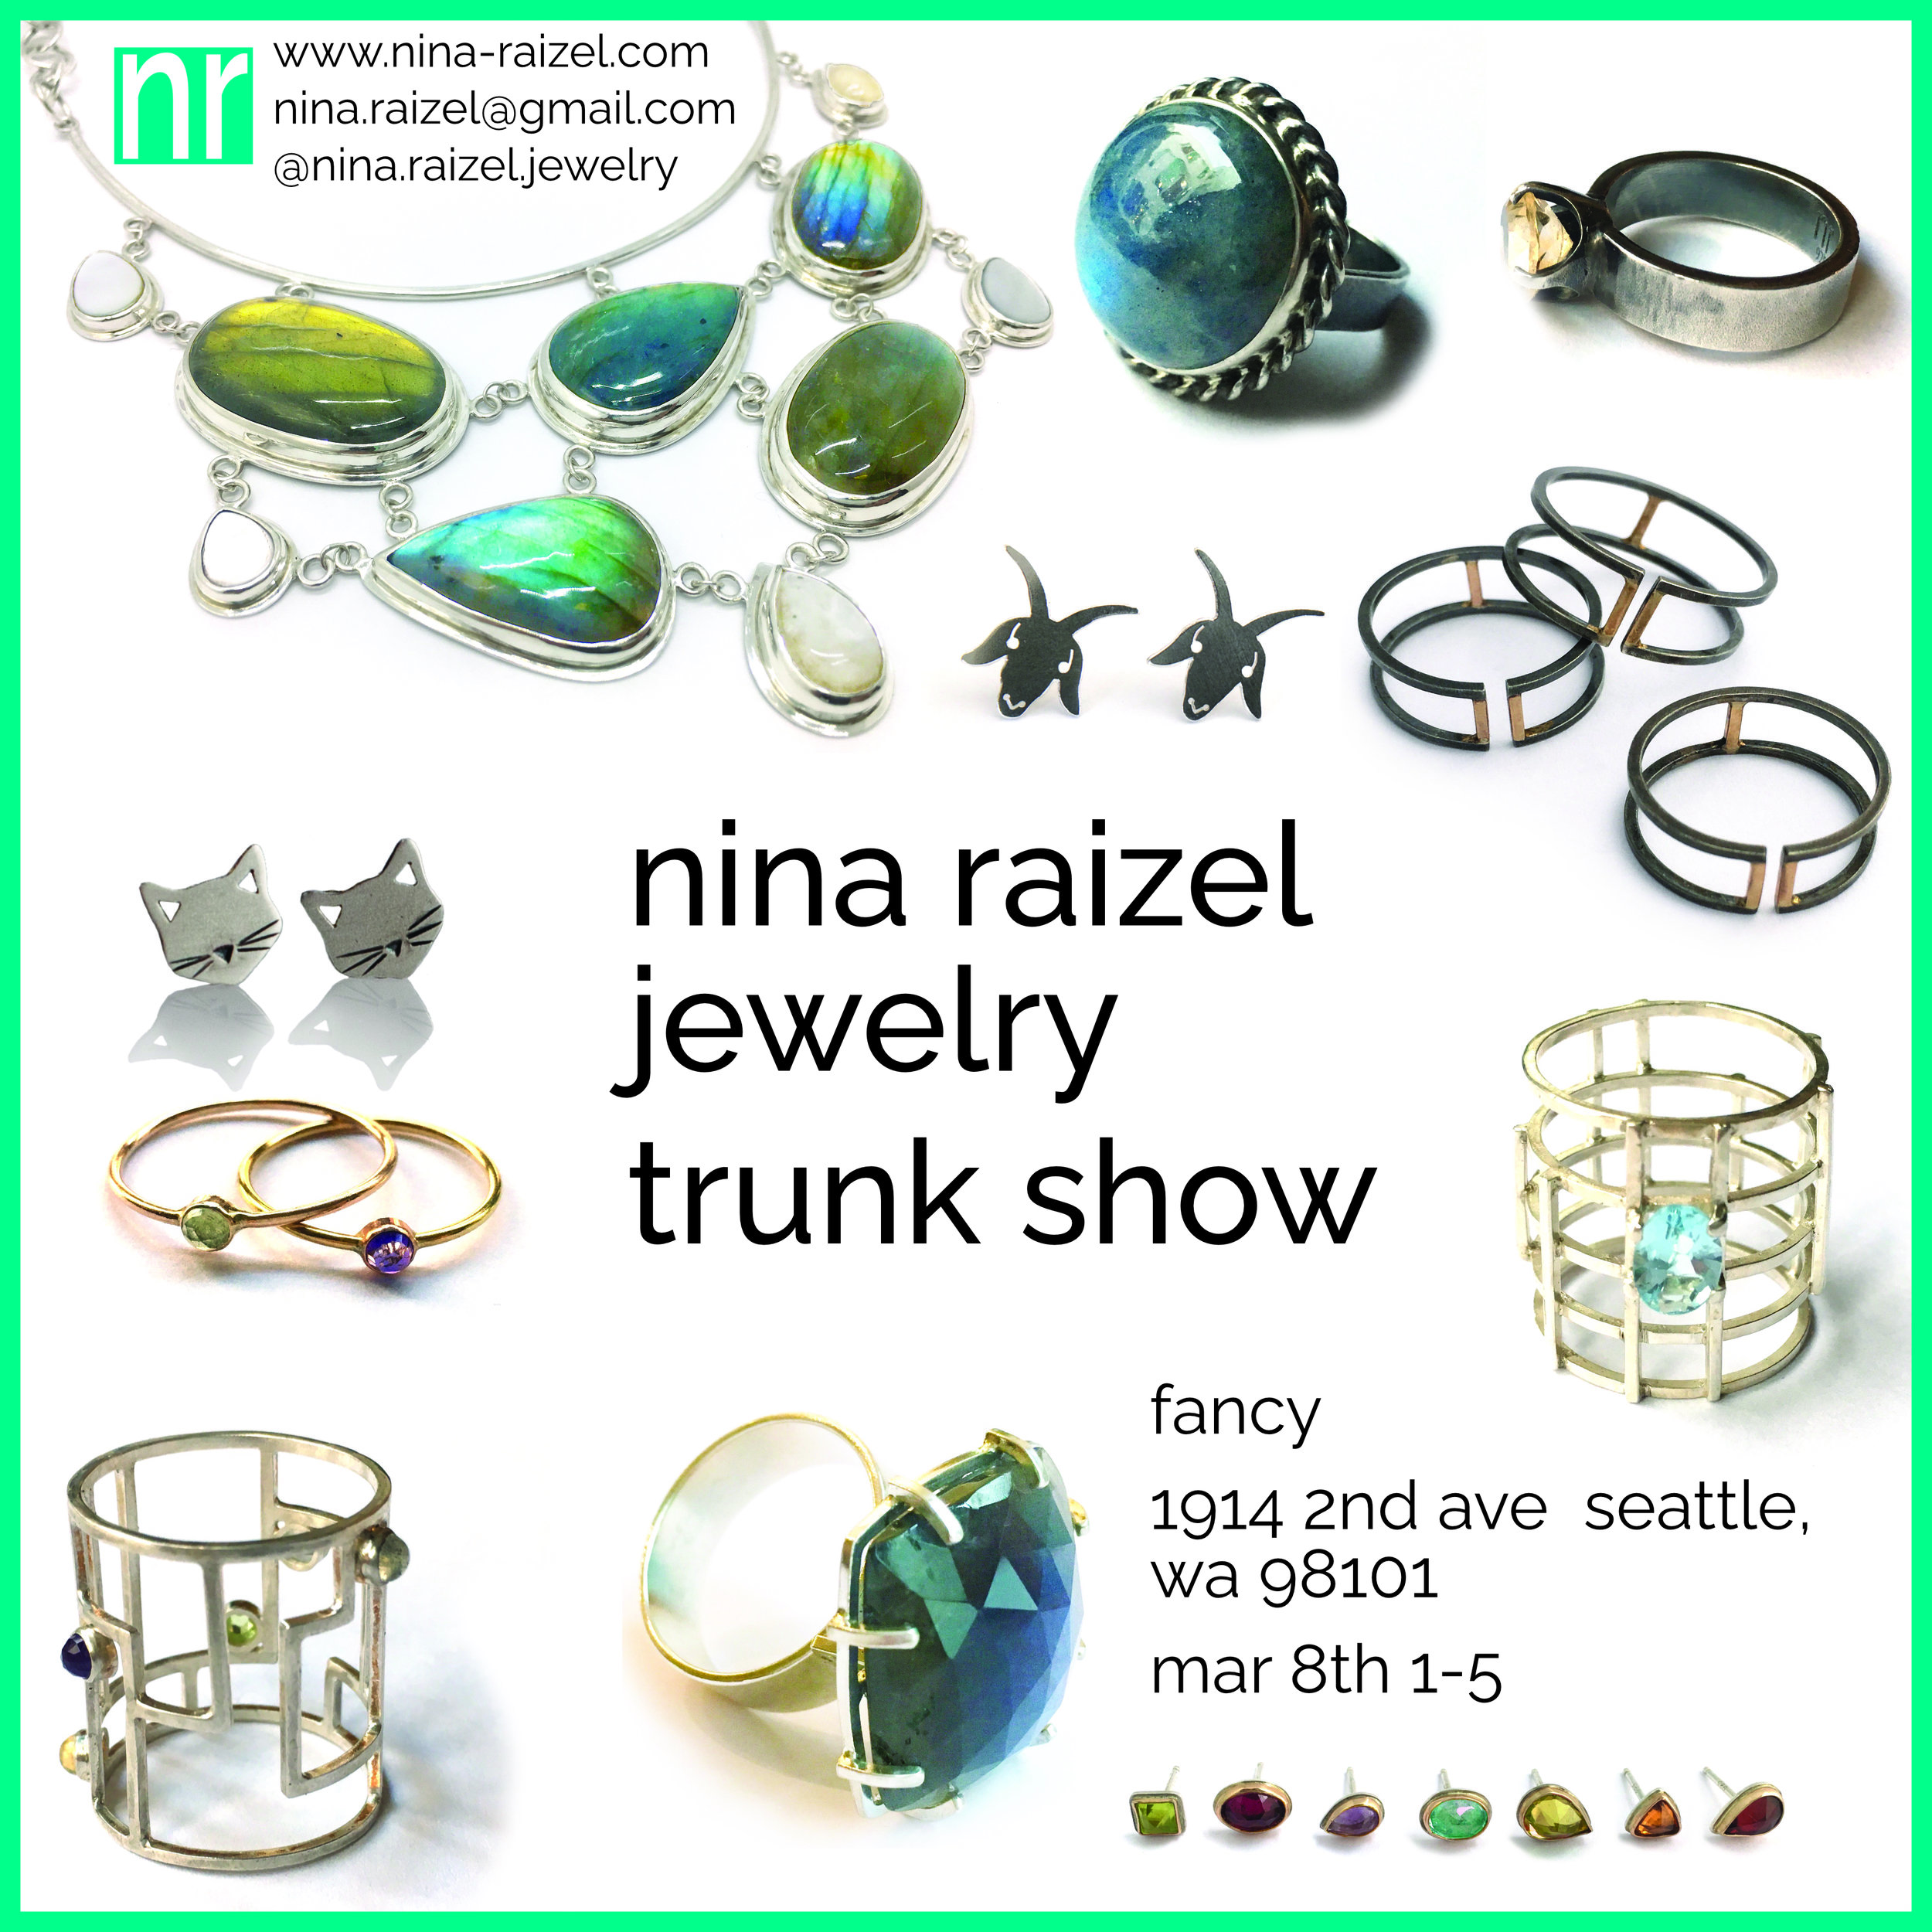 nina fancy show promo large square.jpg